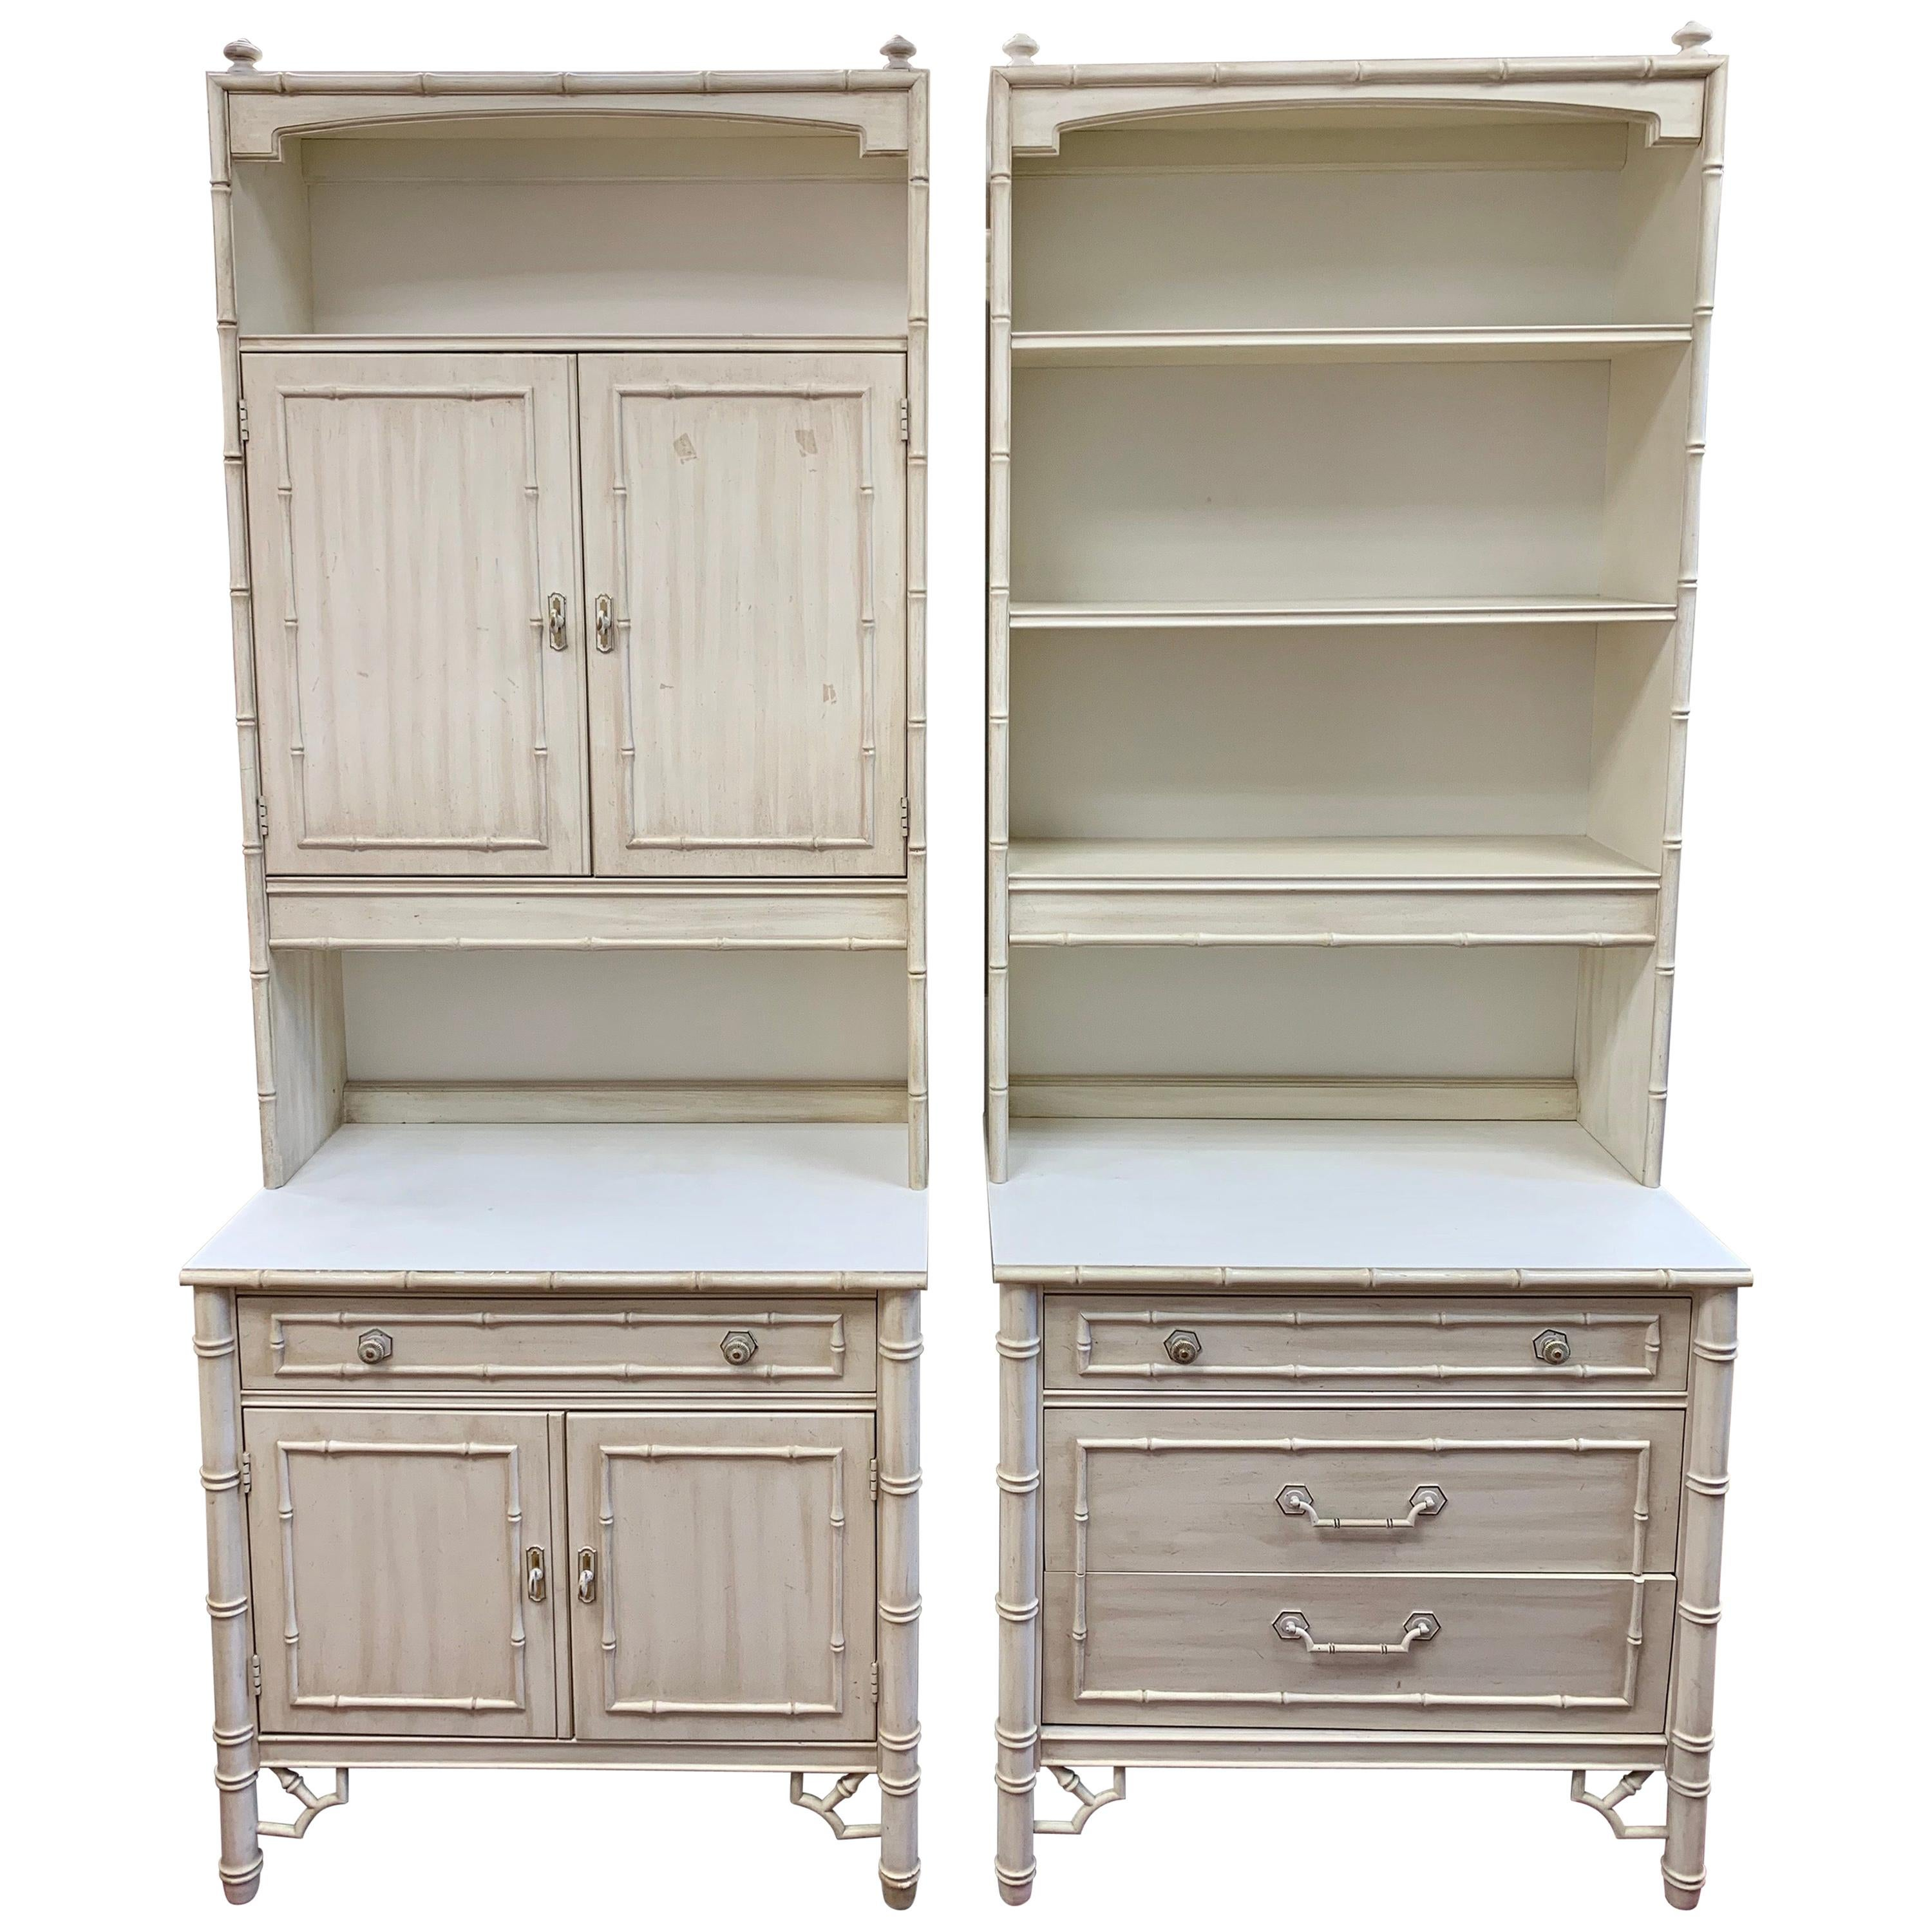 Midcentury Faux Bamboo Nightstands Cabinets with Bookshelves, 4 Pieces